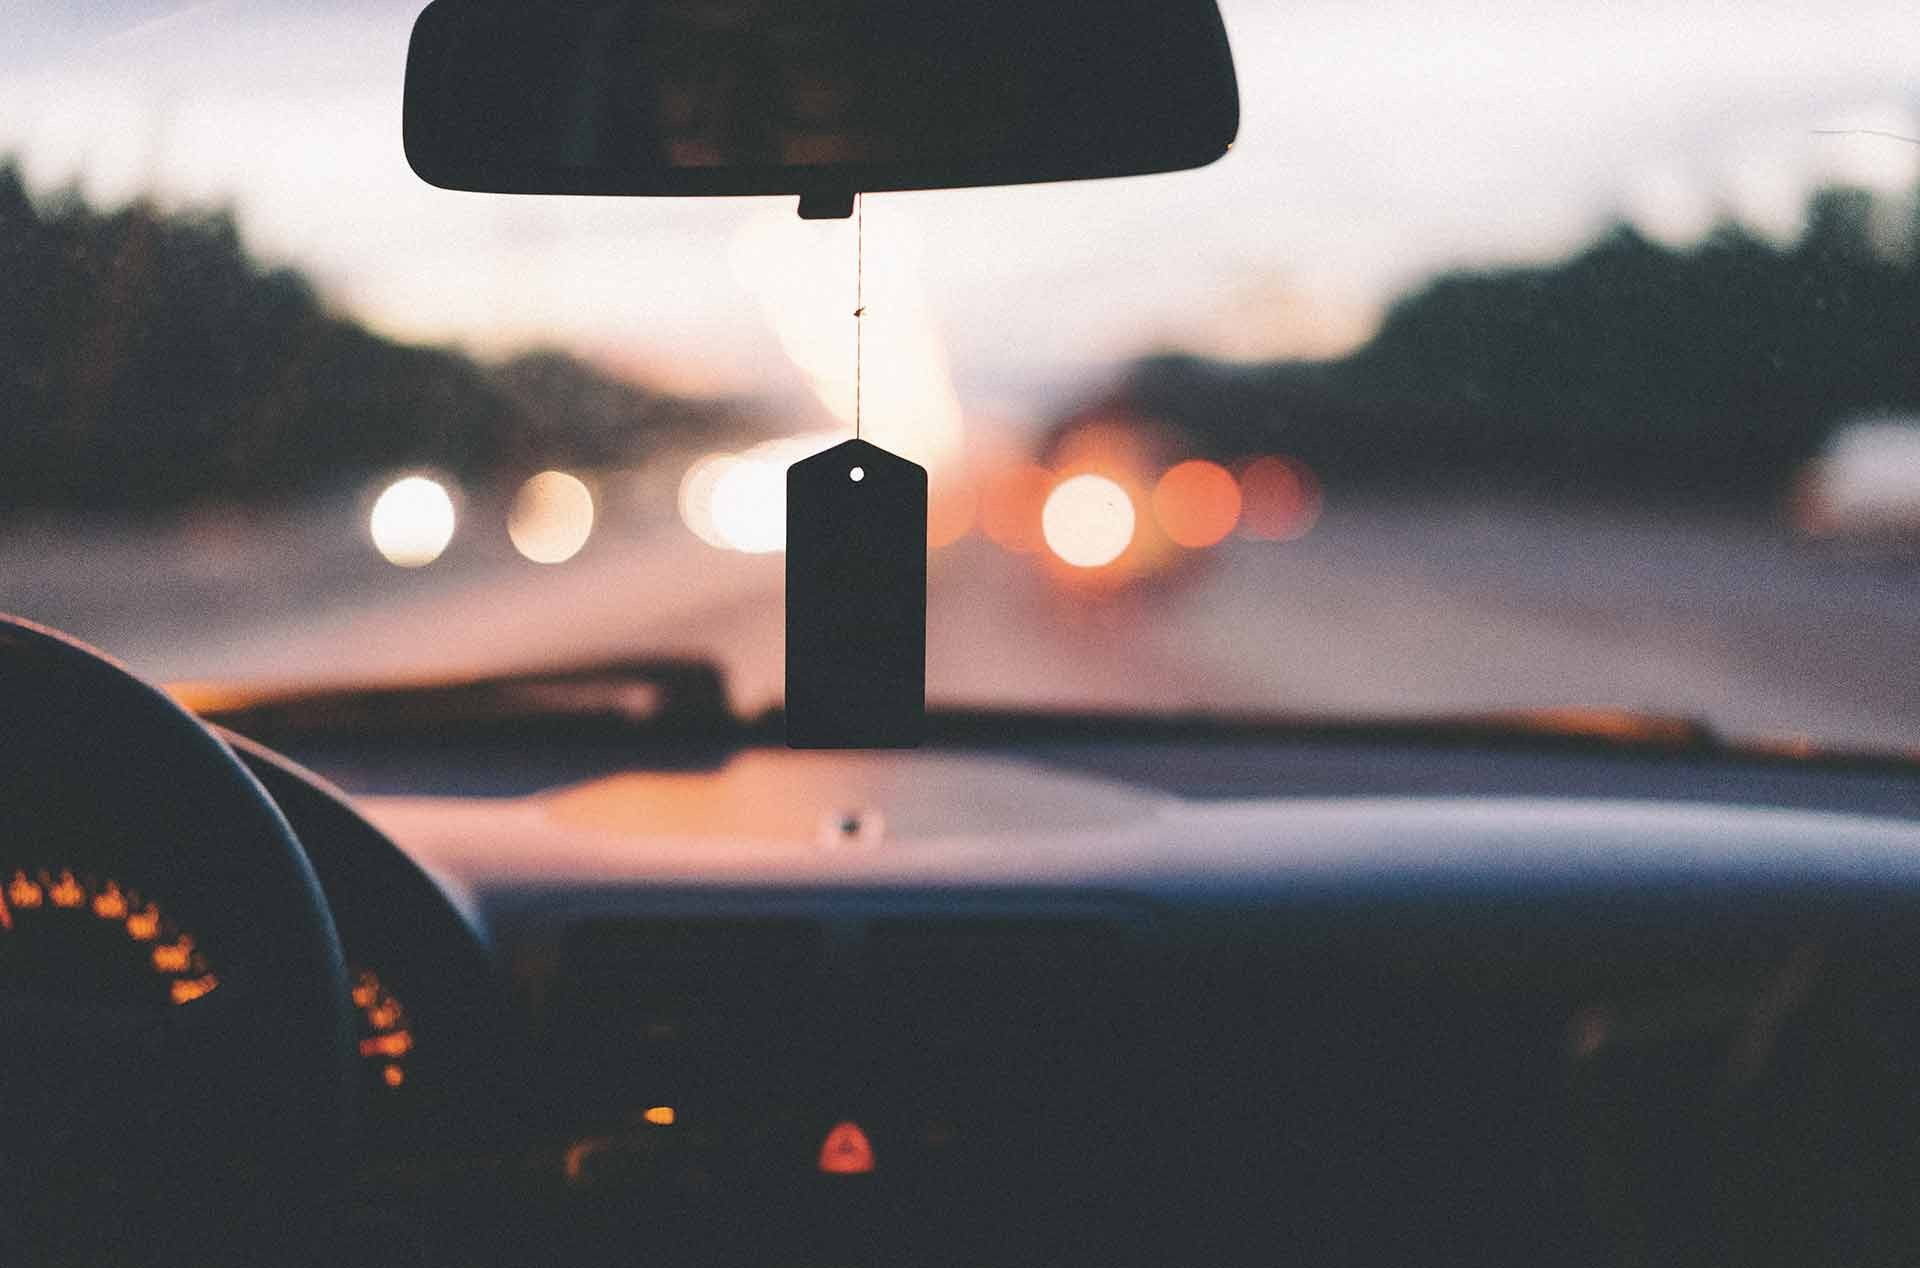 DRIVING AND TAKING CBD: IS THERE A RISK?